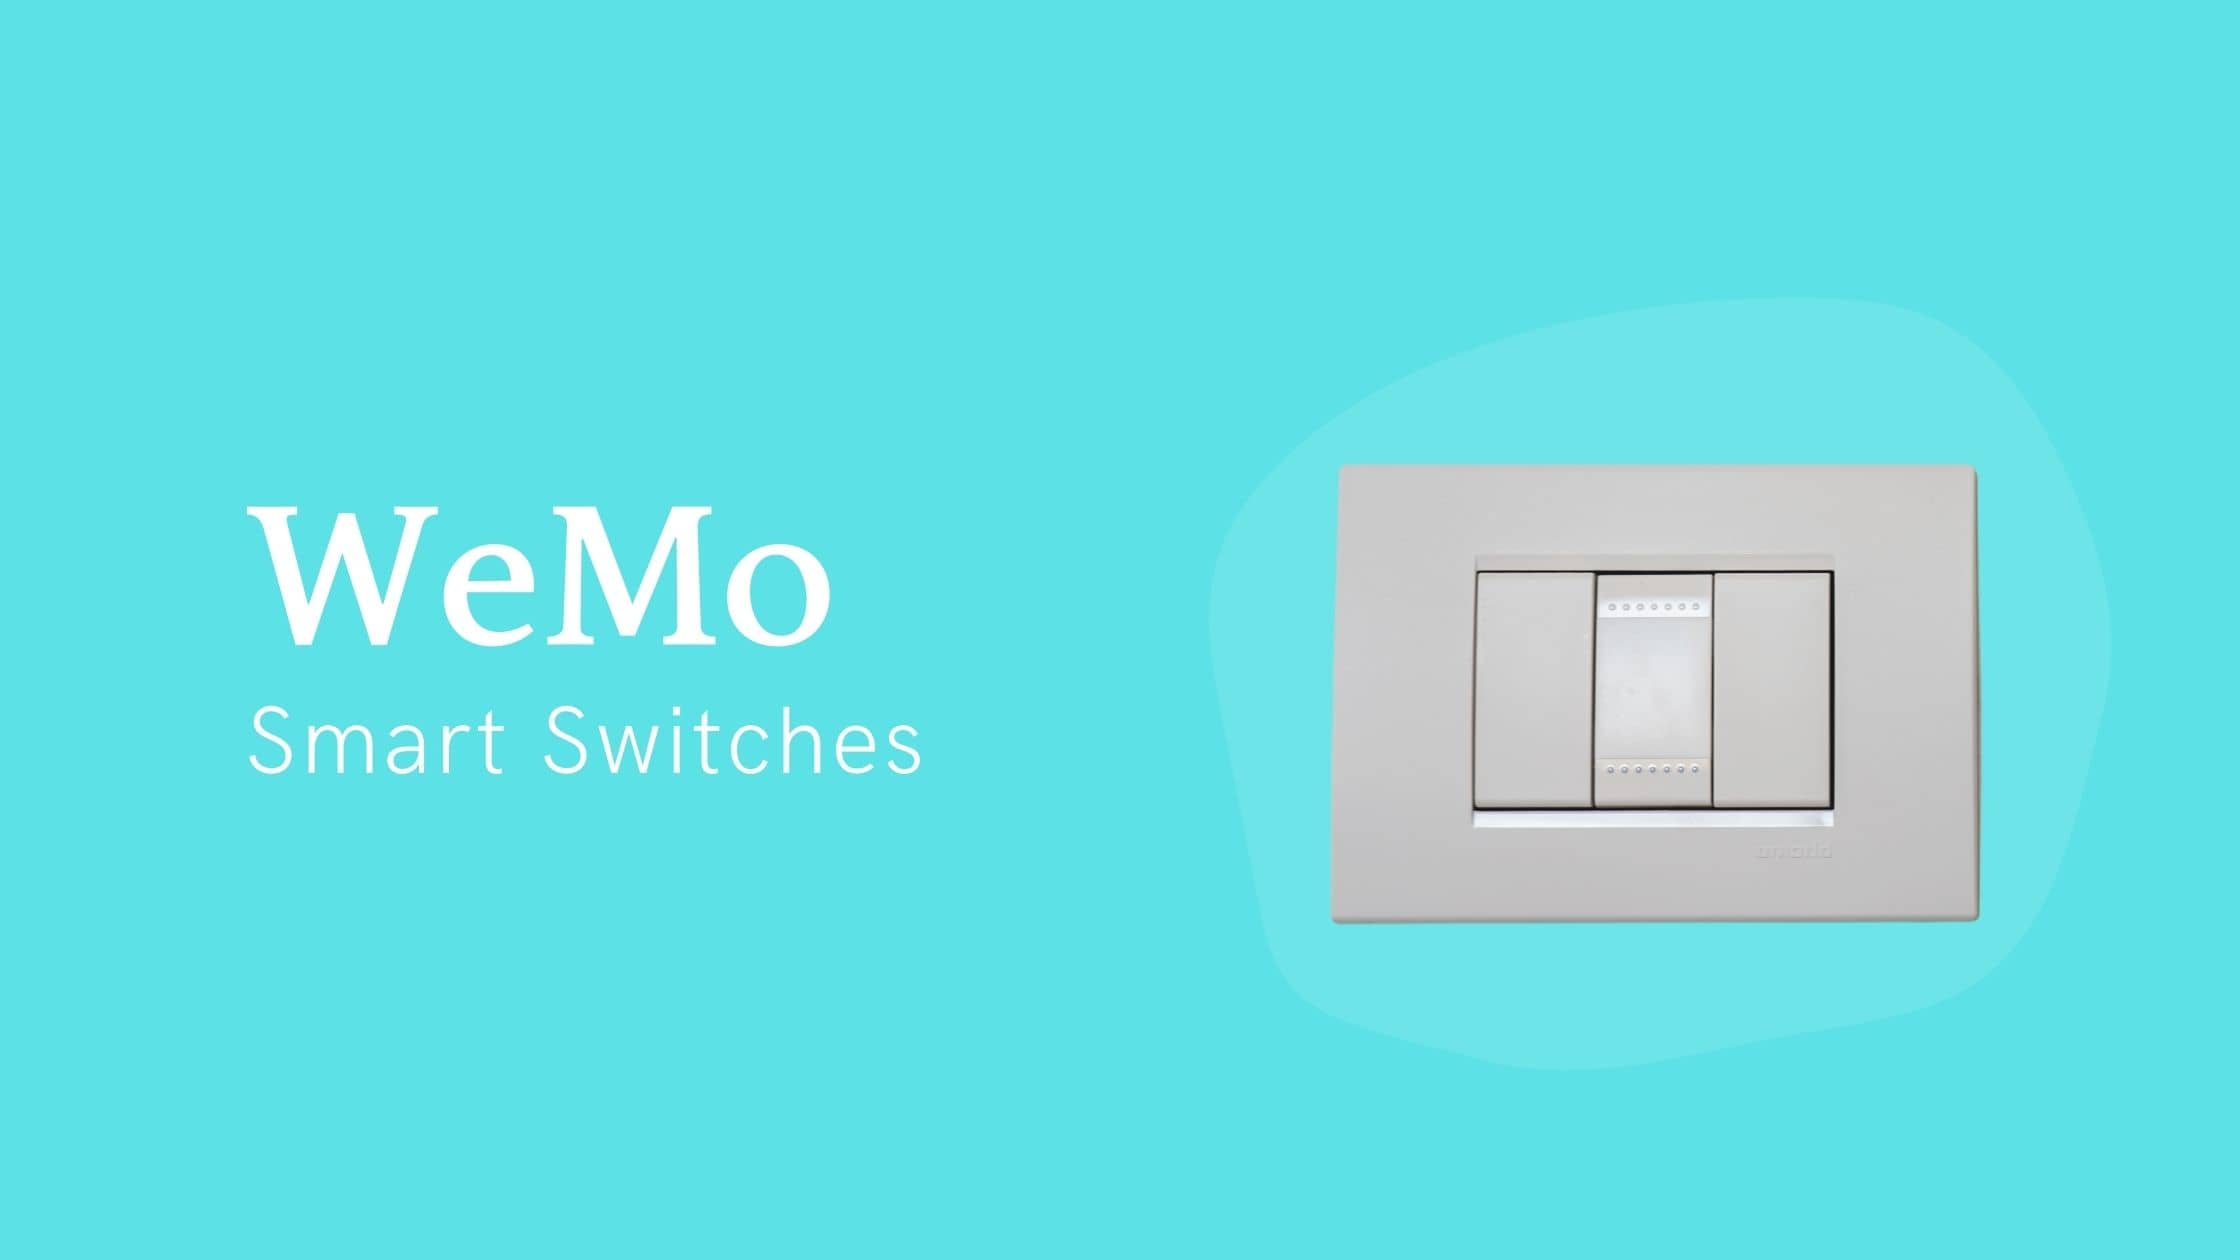 WeMo Smart Switches